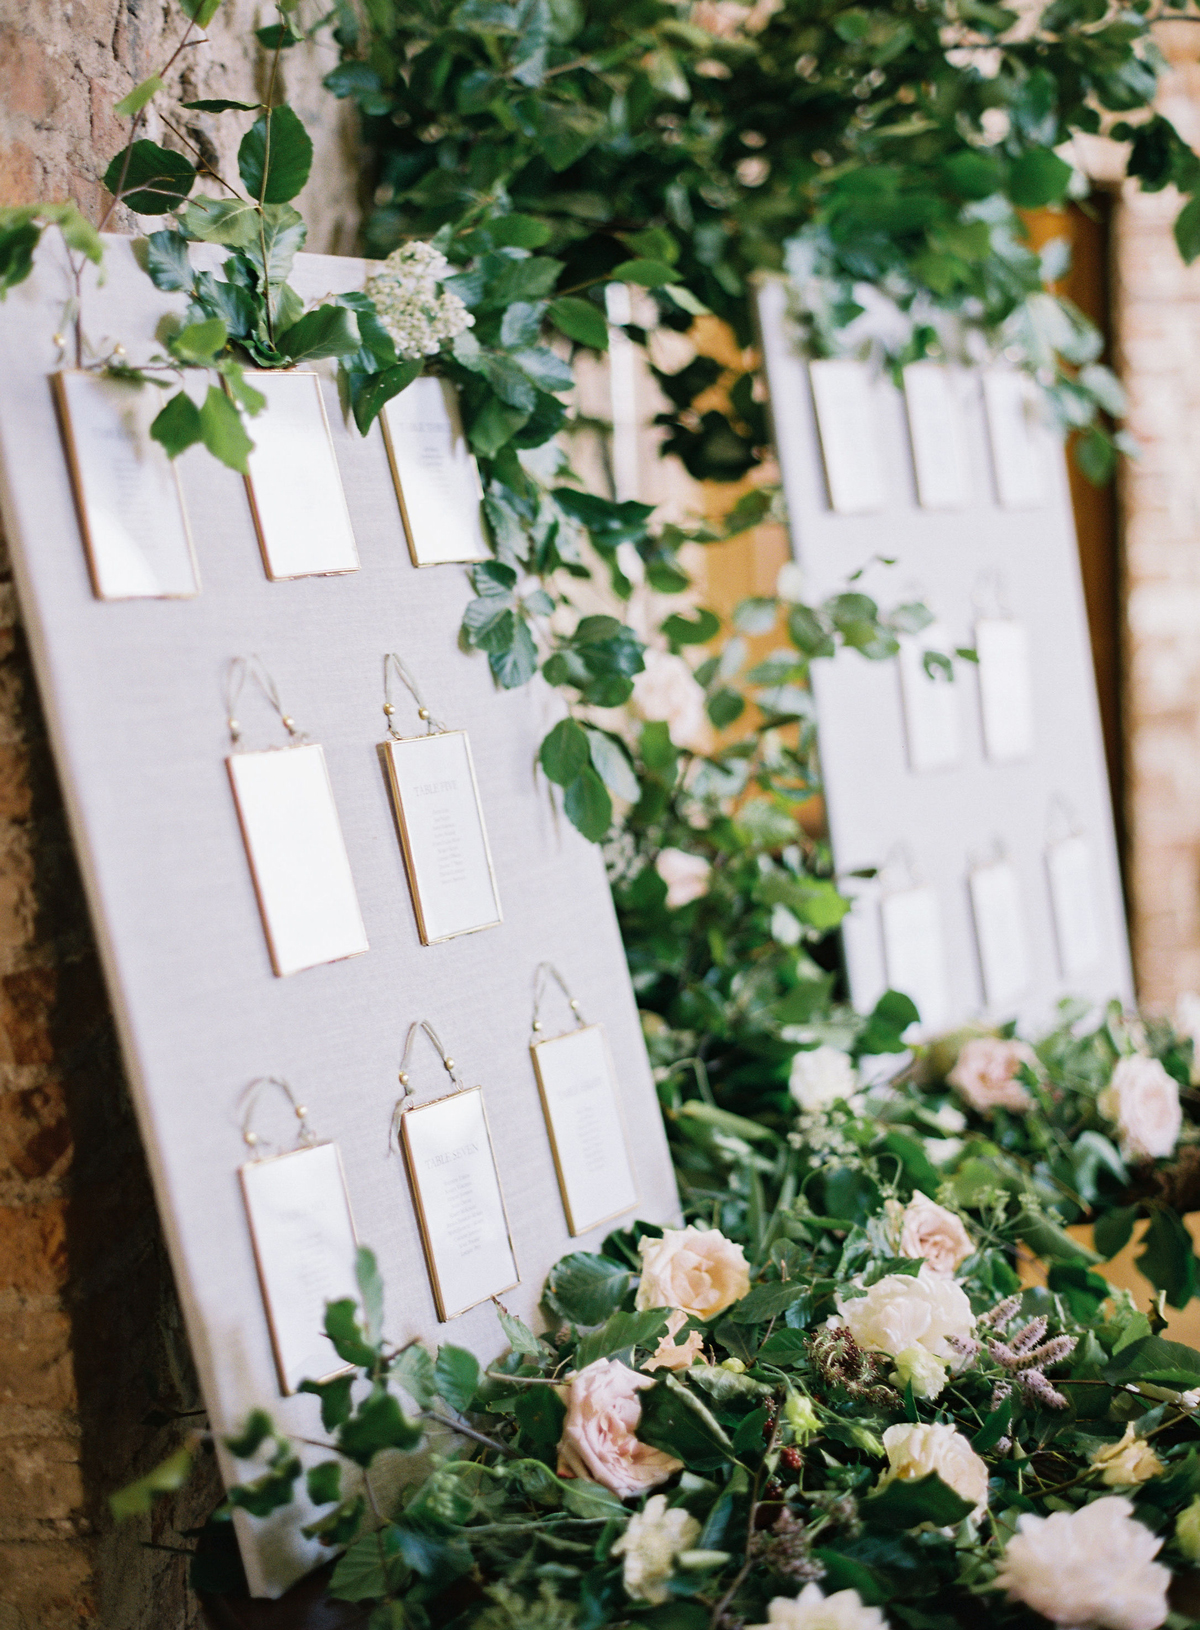 escort cards pinned to greenery and floral covered boards